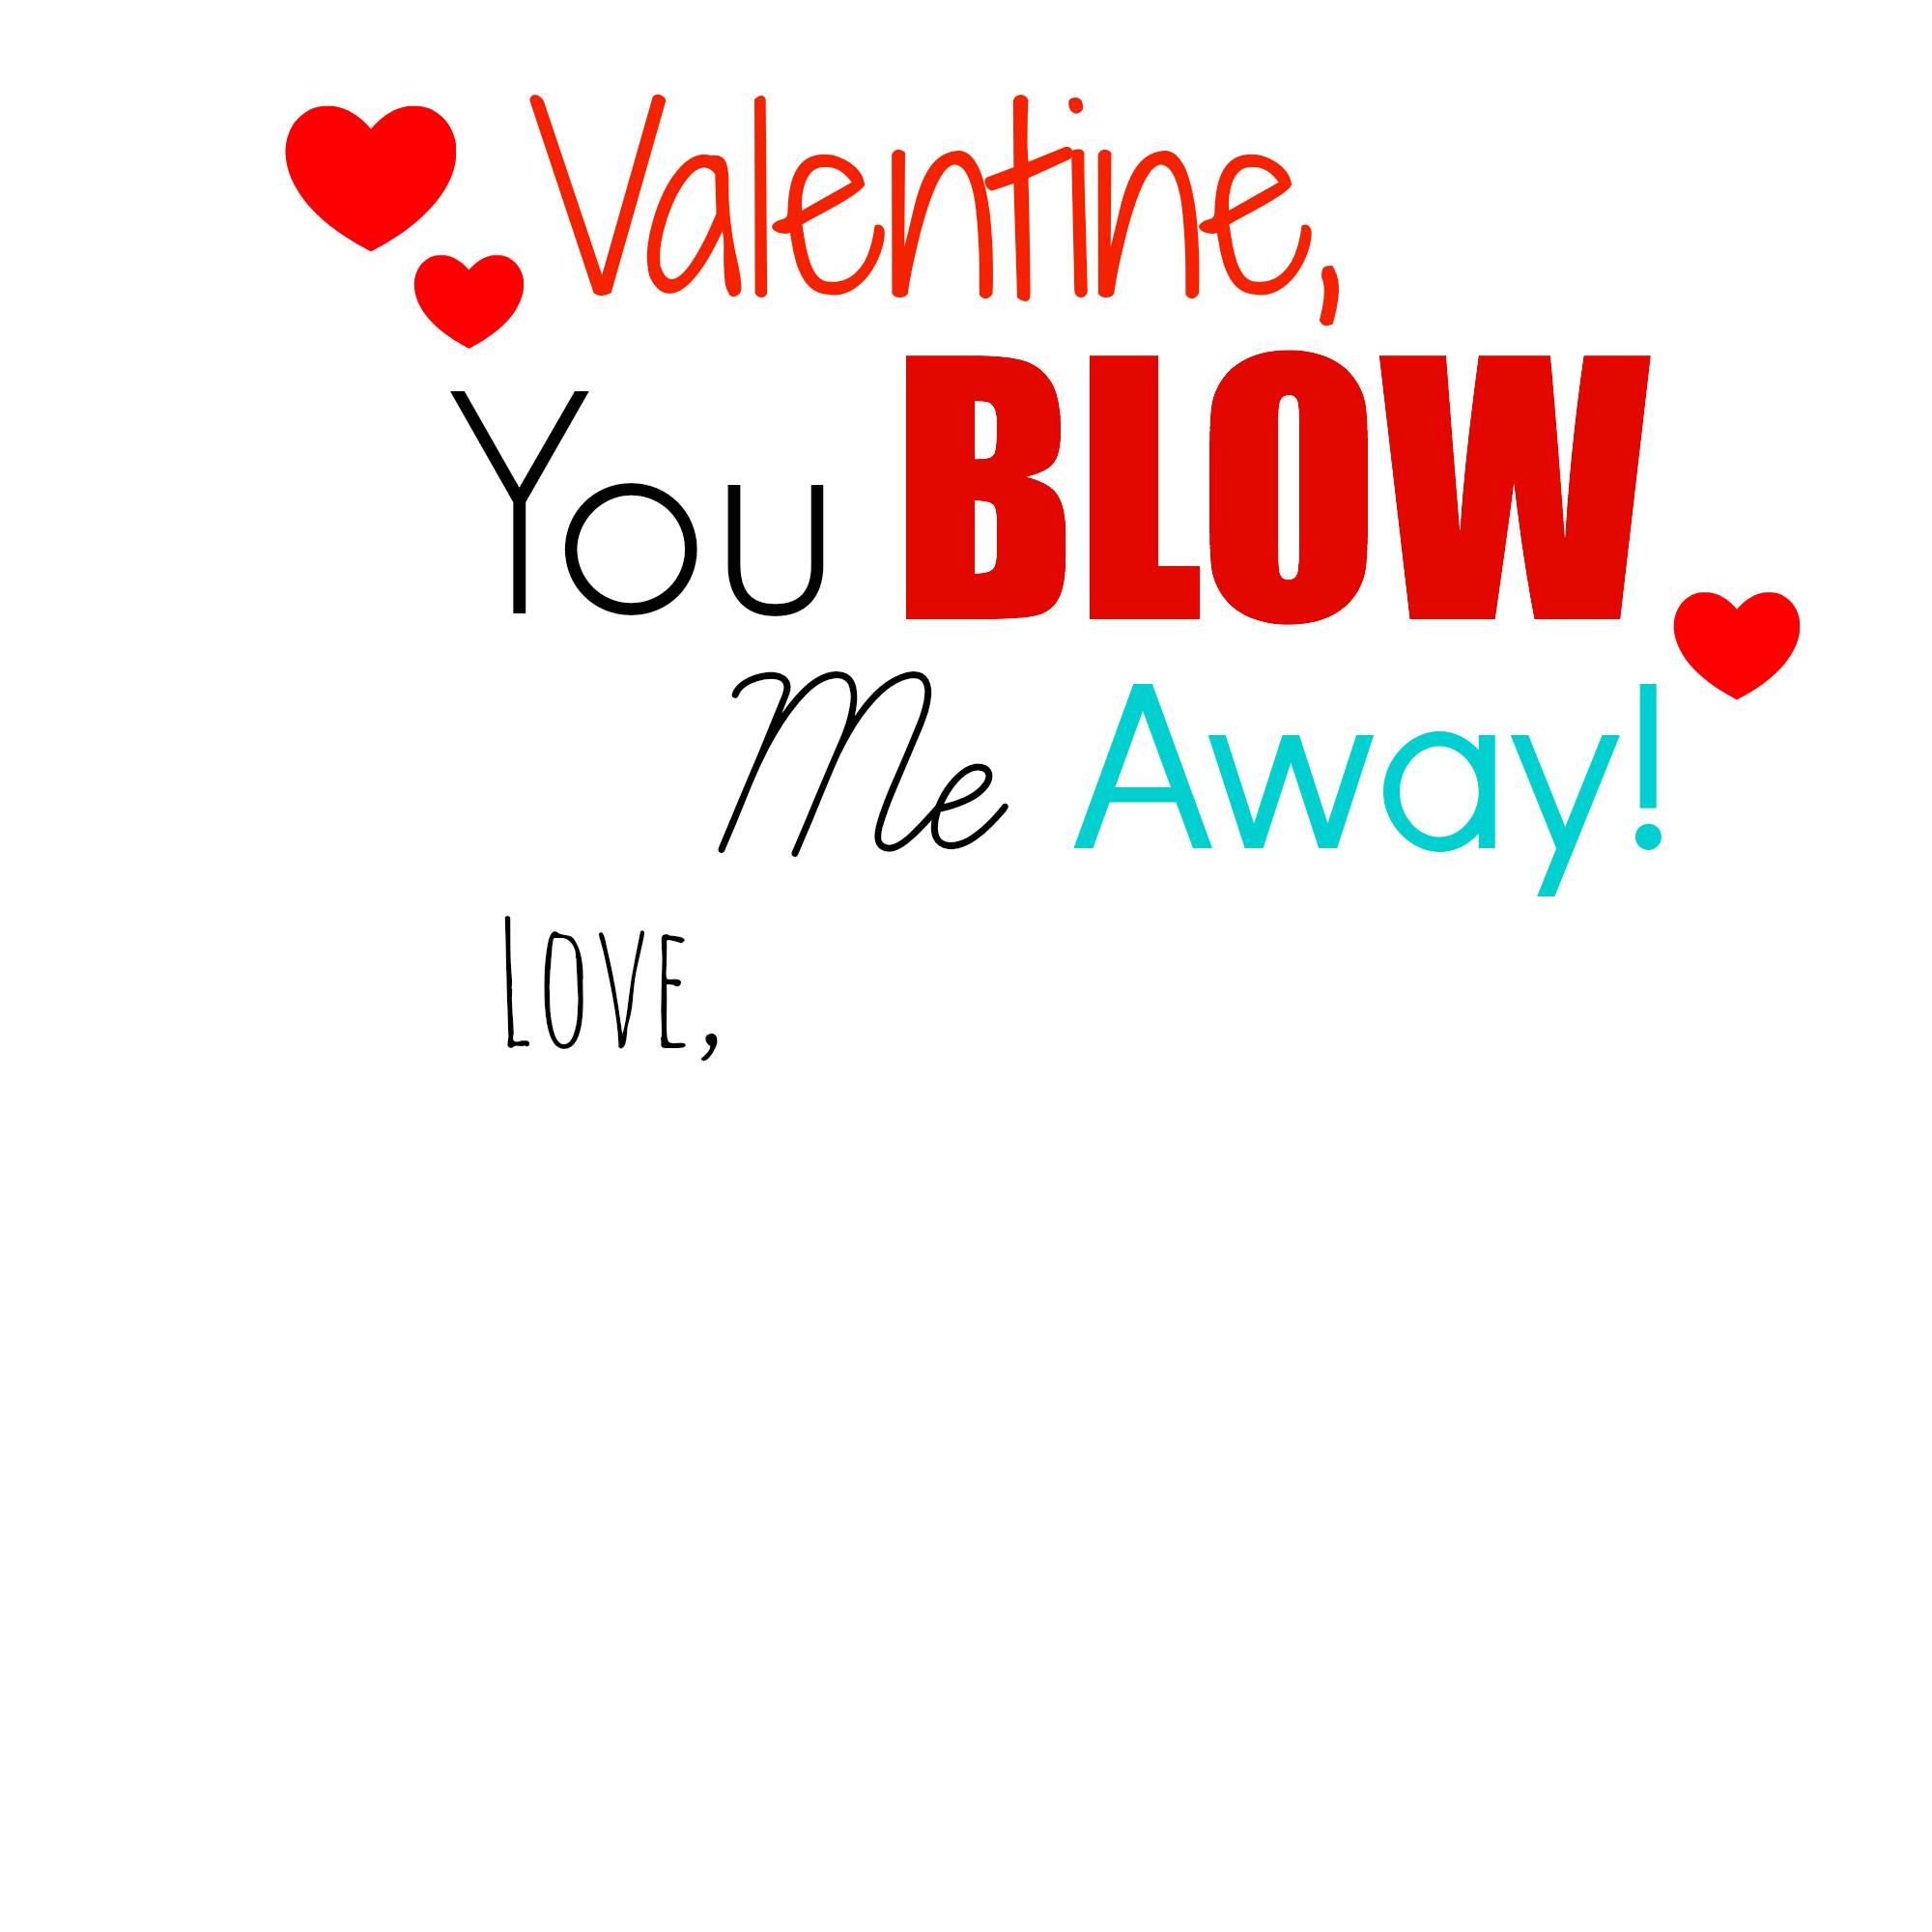 image relating to You Blow Me Away Valentine Printable called Do-it-yourself Valentines 2014 and a Absolutely free Printable! - Smashed